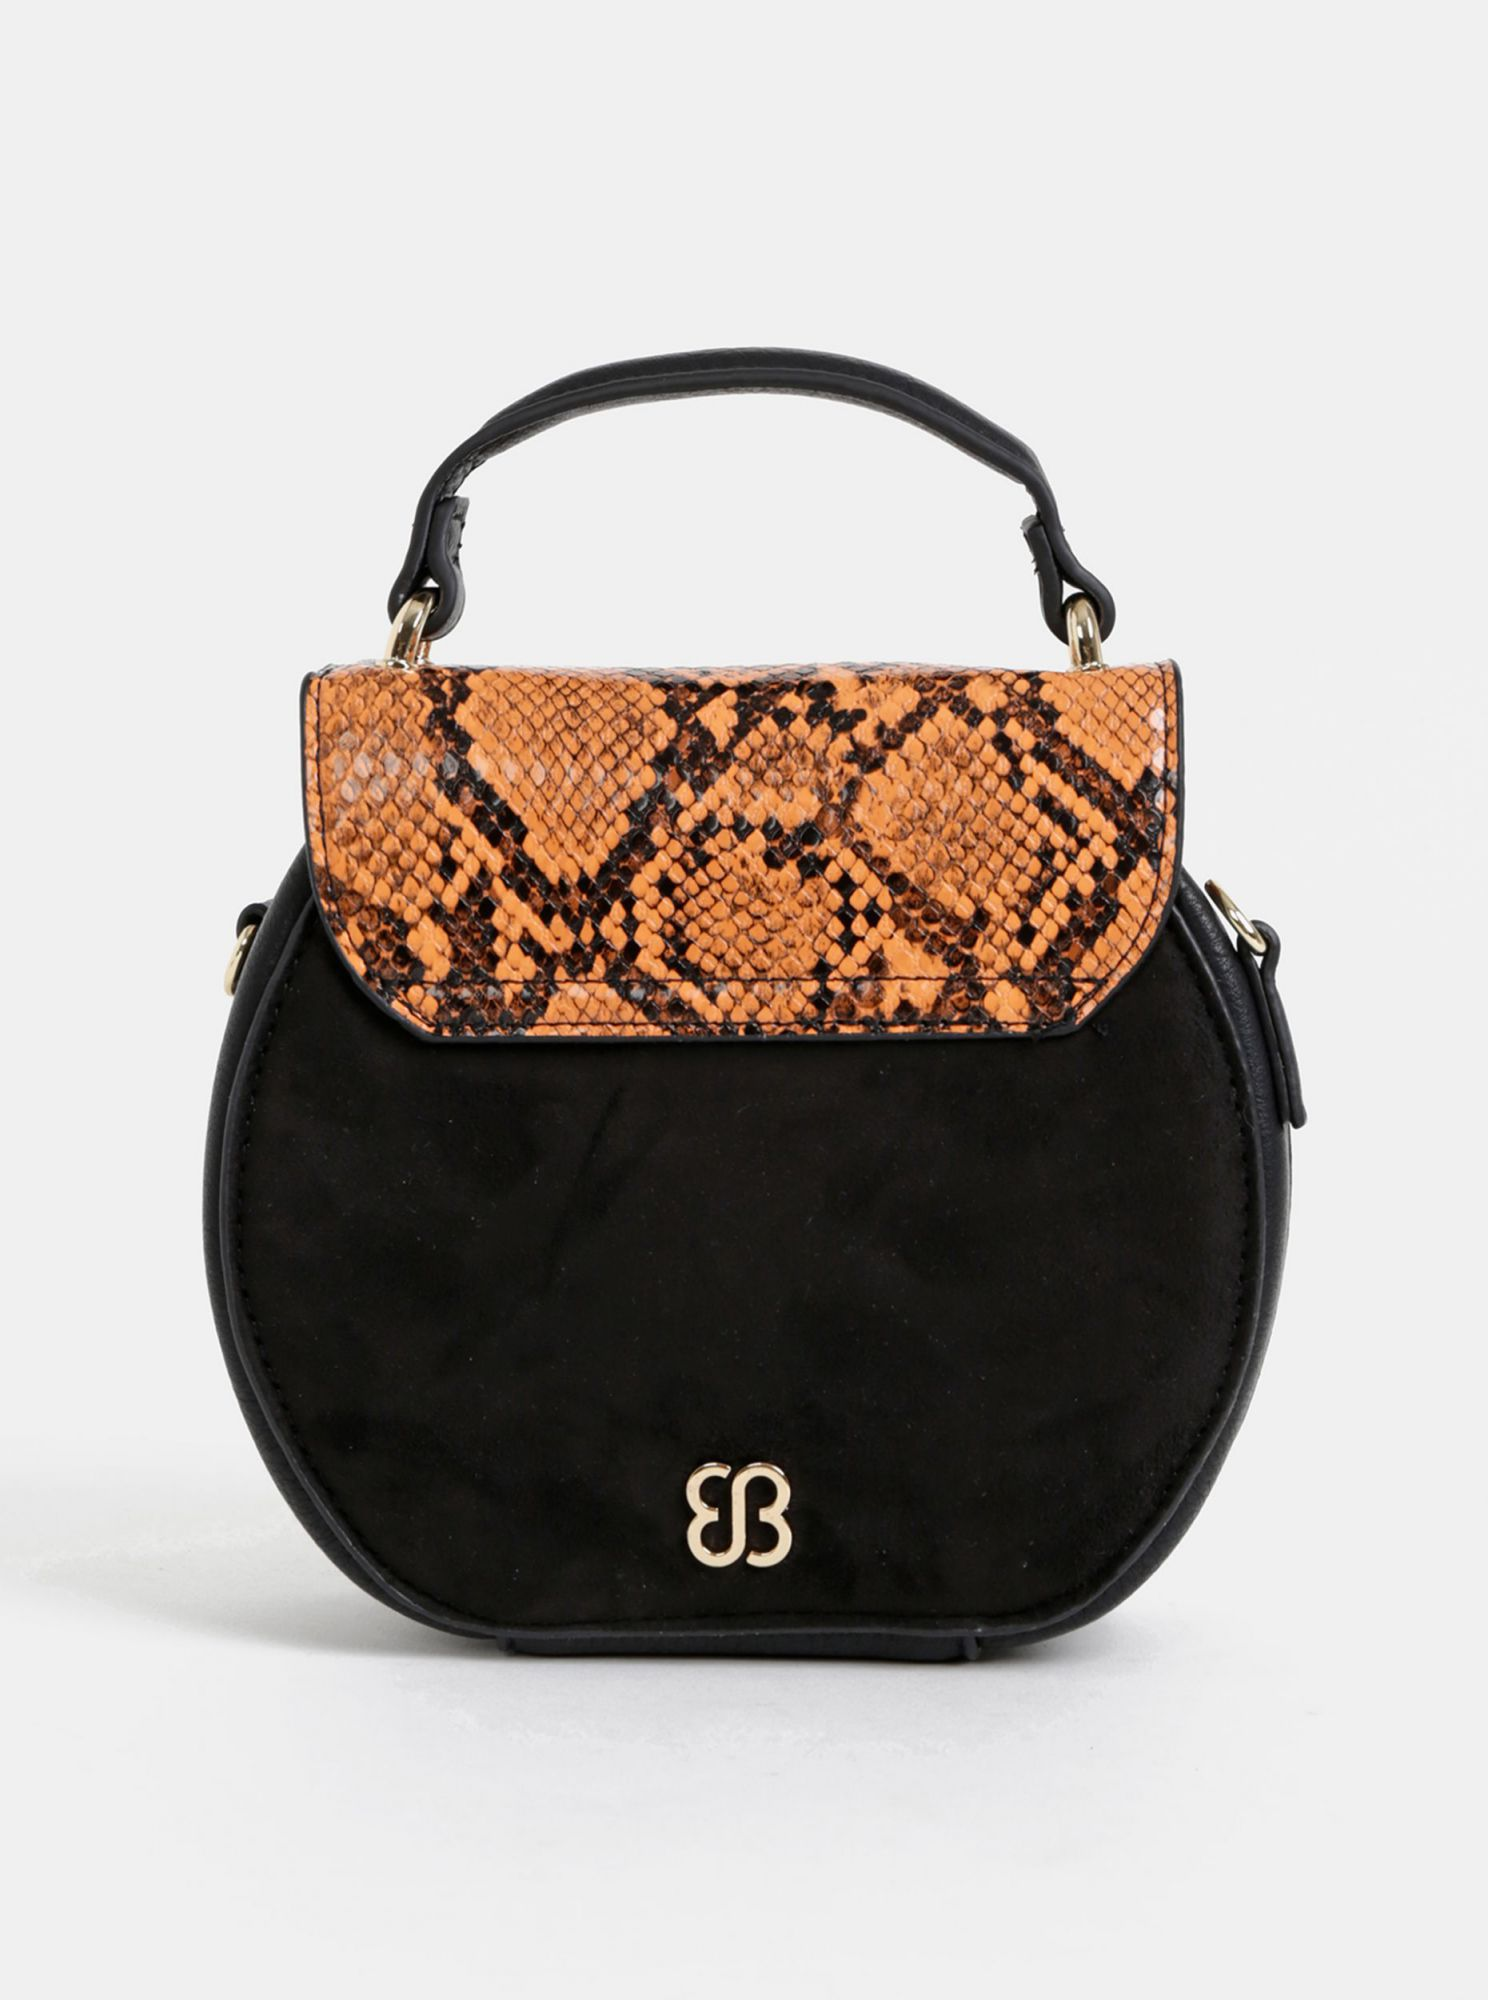 Black crossbody handbag in suede finish with snake pattern Bessie London